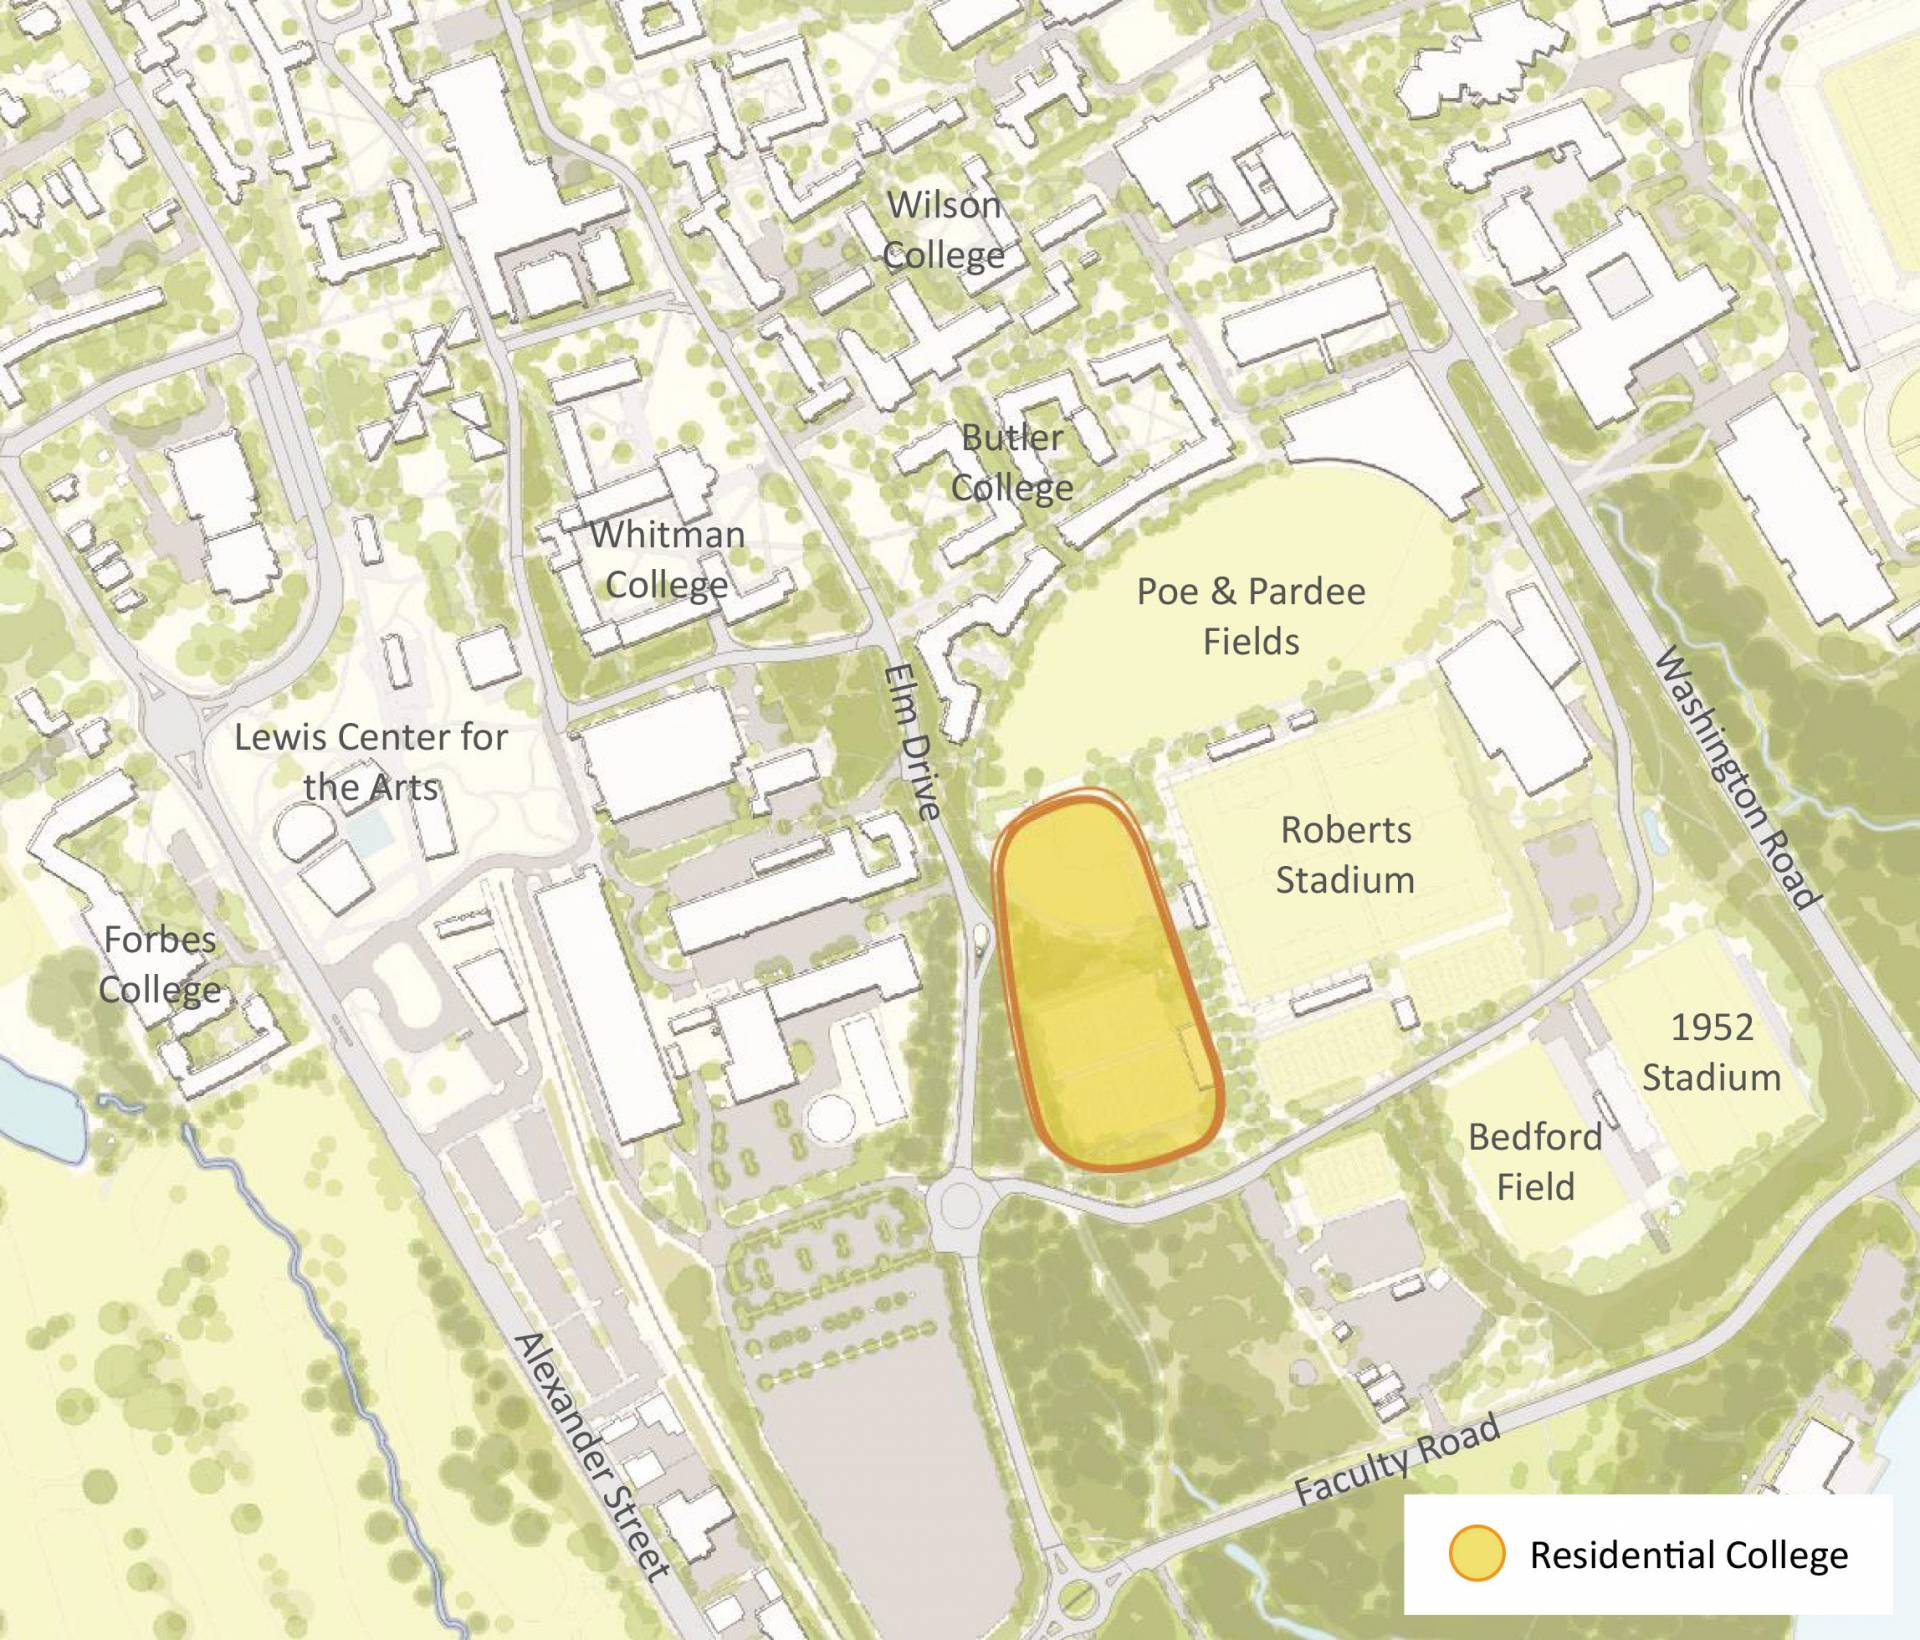 A map of the Princeton campus showing the potential site for a new residential college south of Poe Field and east of Elm Drive.